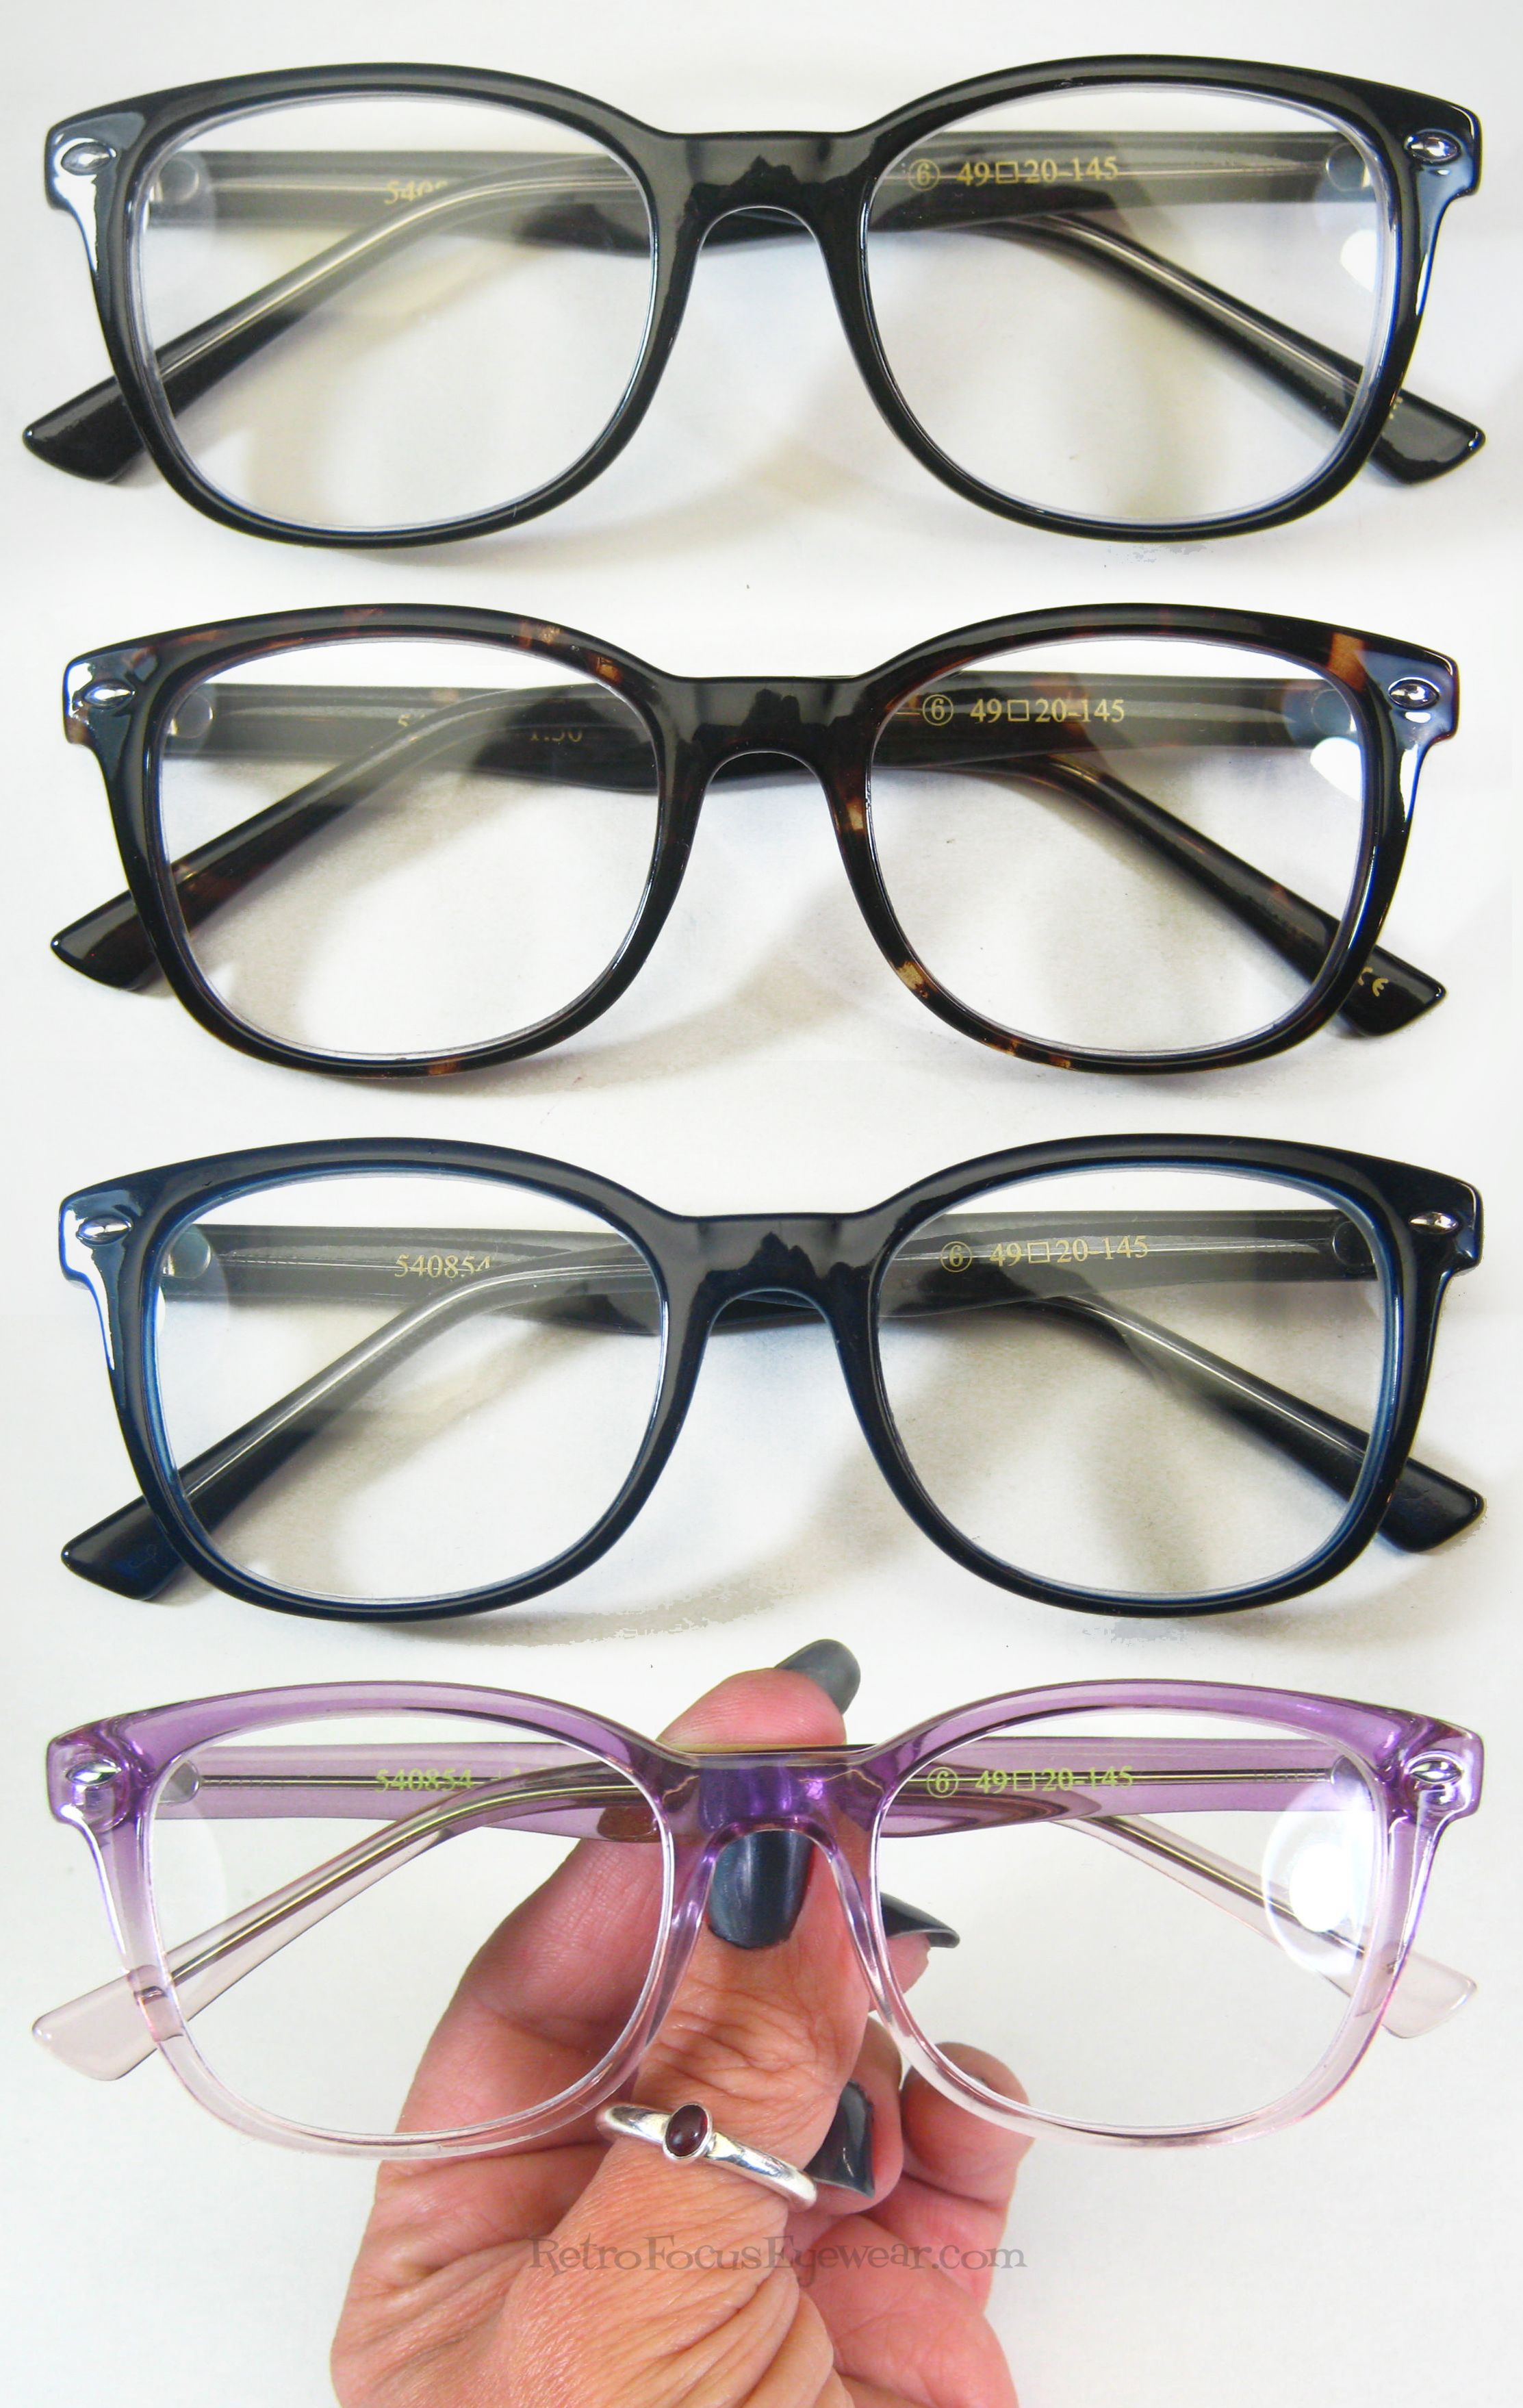 da0744b8285 Nice unisex hipster reading glasses for those who love the 60 s. These  readers come in Tortoise